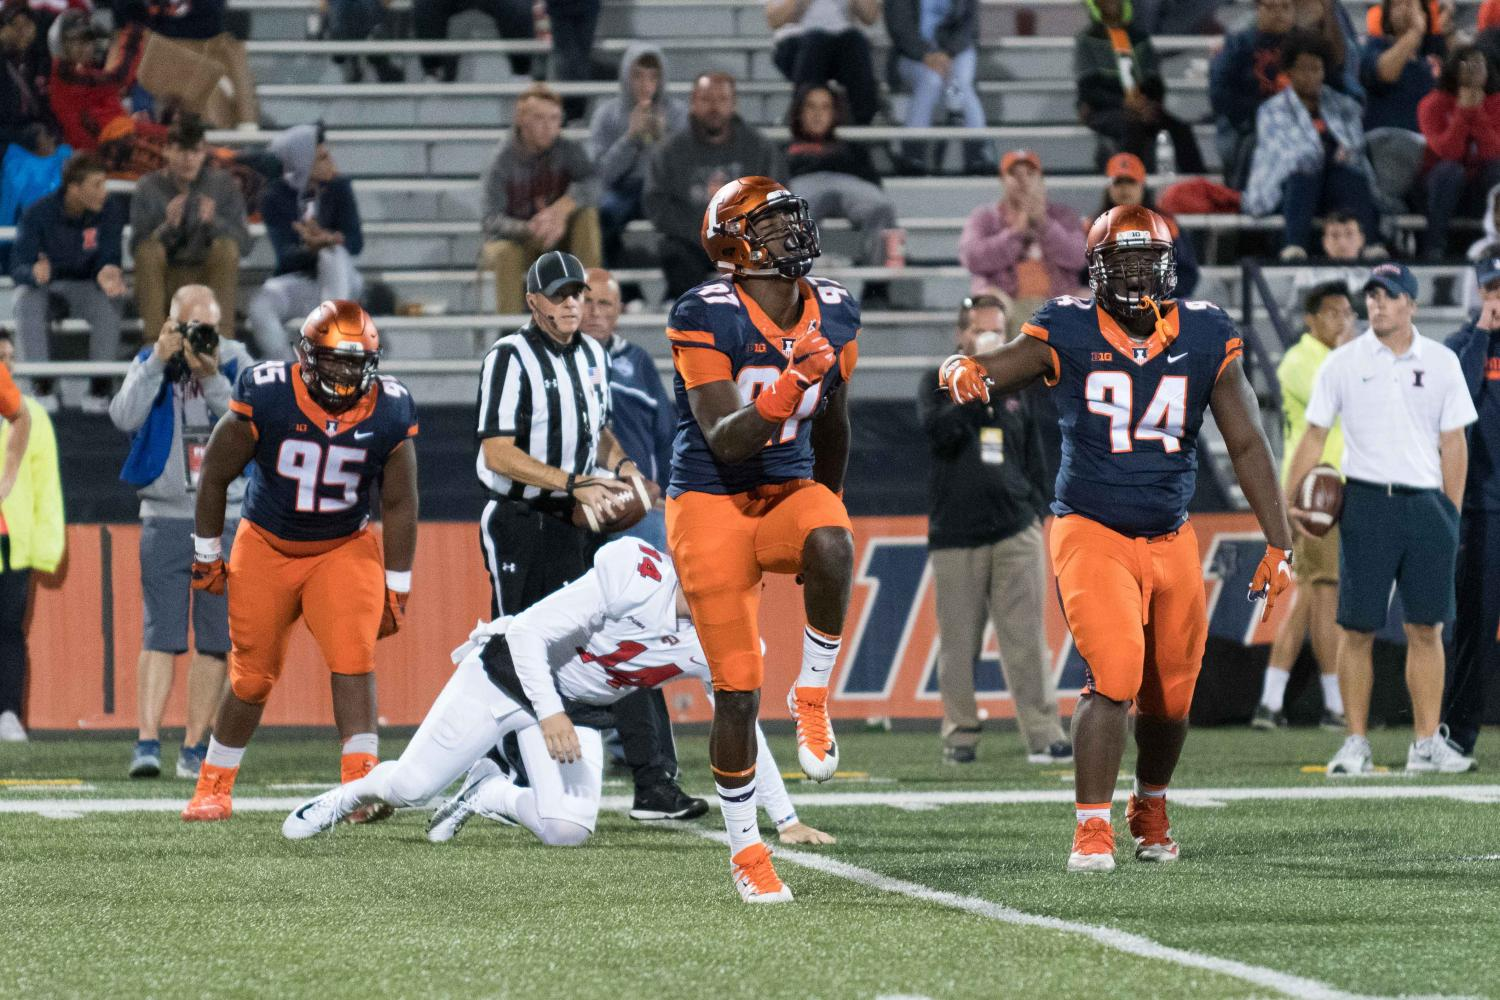 Freshman+defensive+end+Bobby+Roundtree+celebrates+after%0Amaking+a+tackle+during+the+Sept.+9+game+against+Western%0AKentucky.+The+Illini+won+20-7.